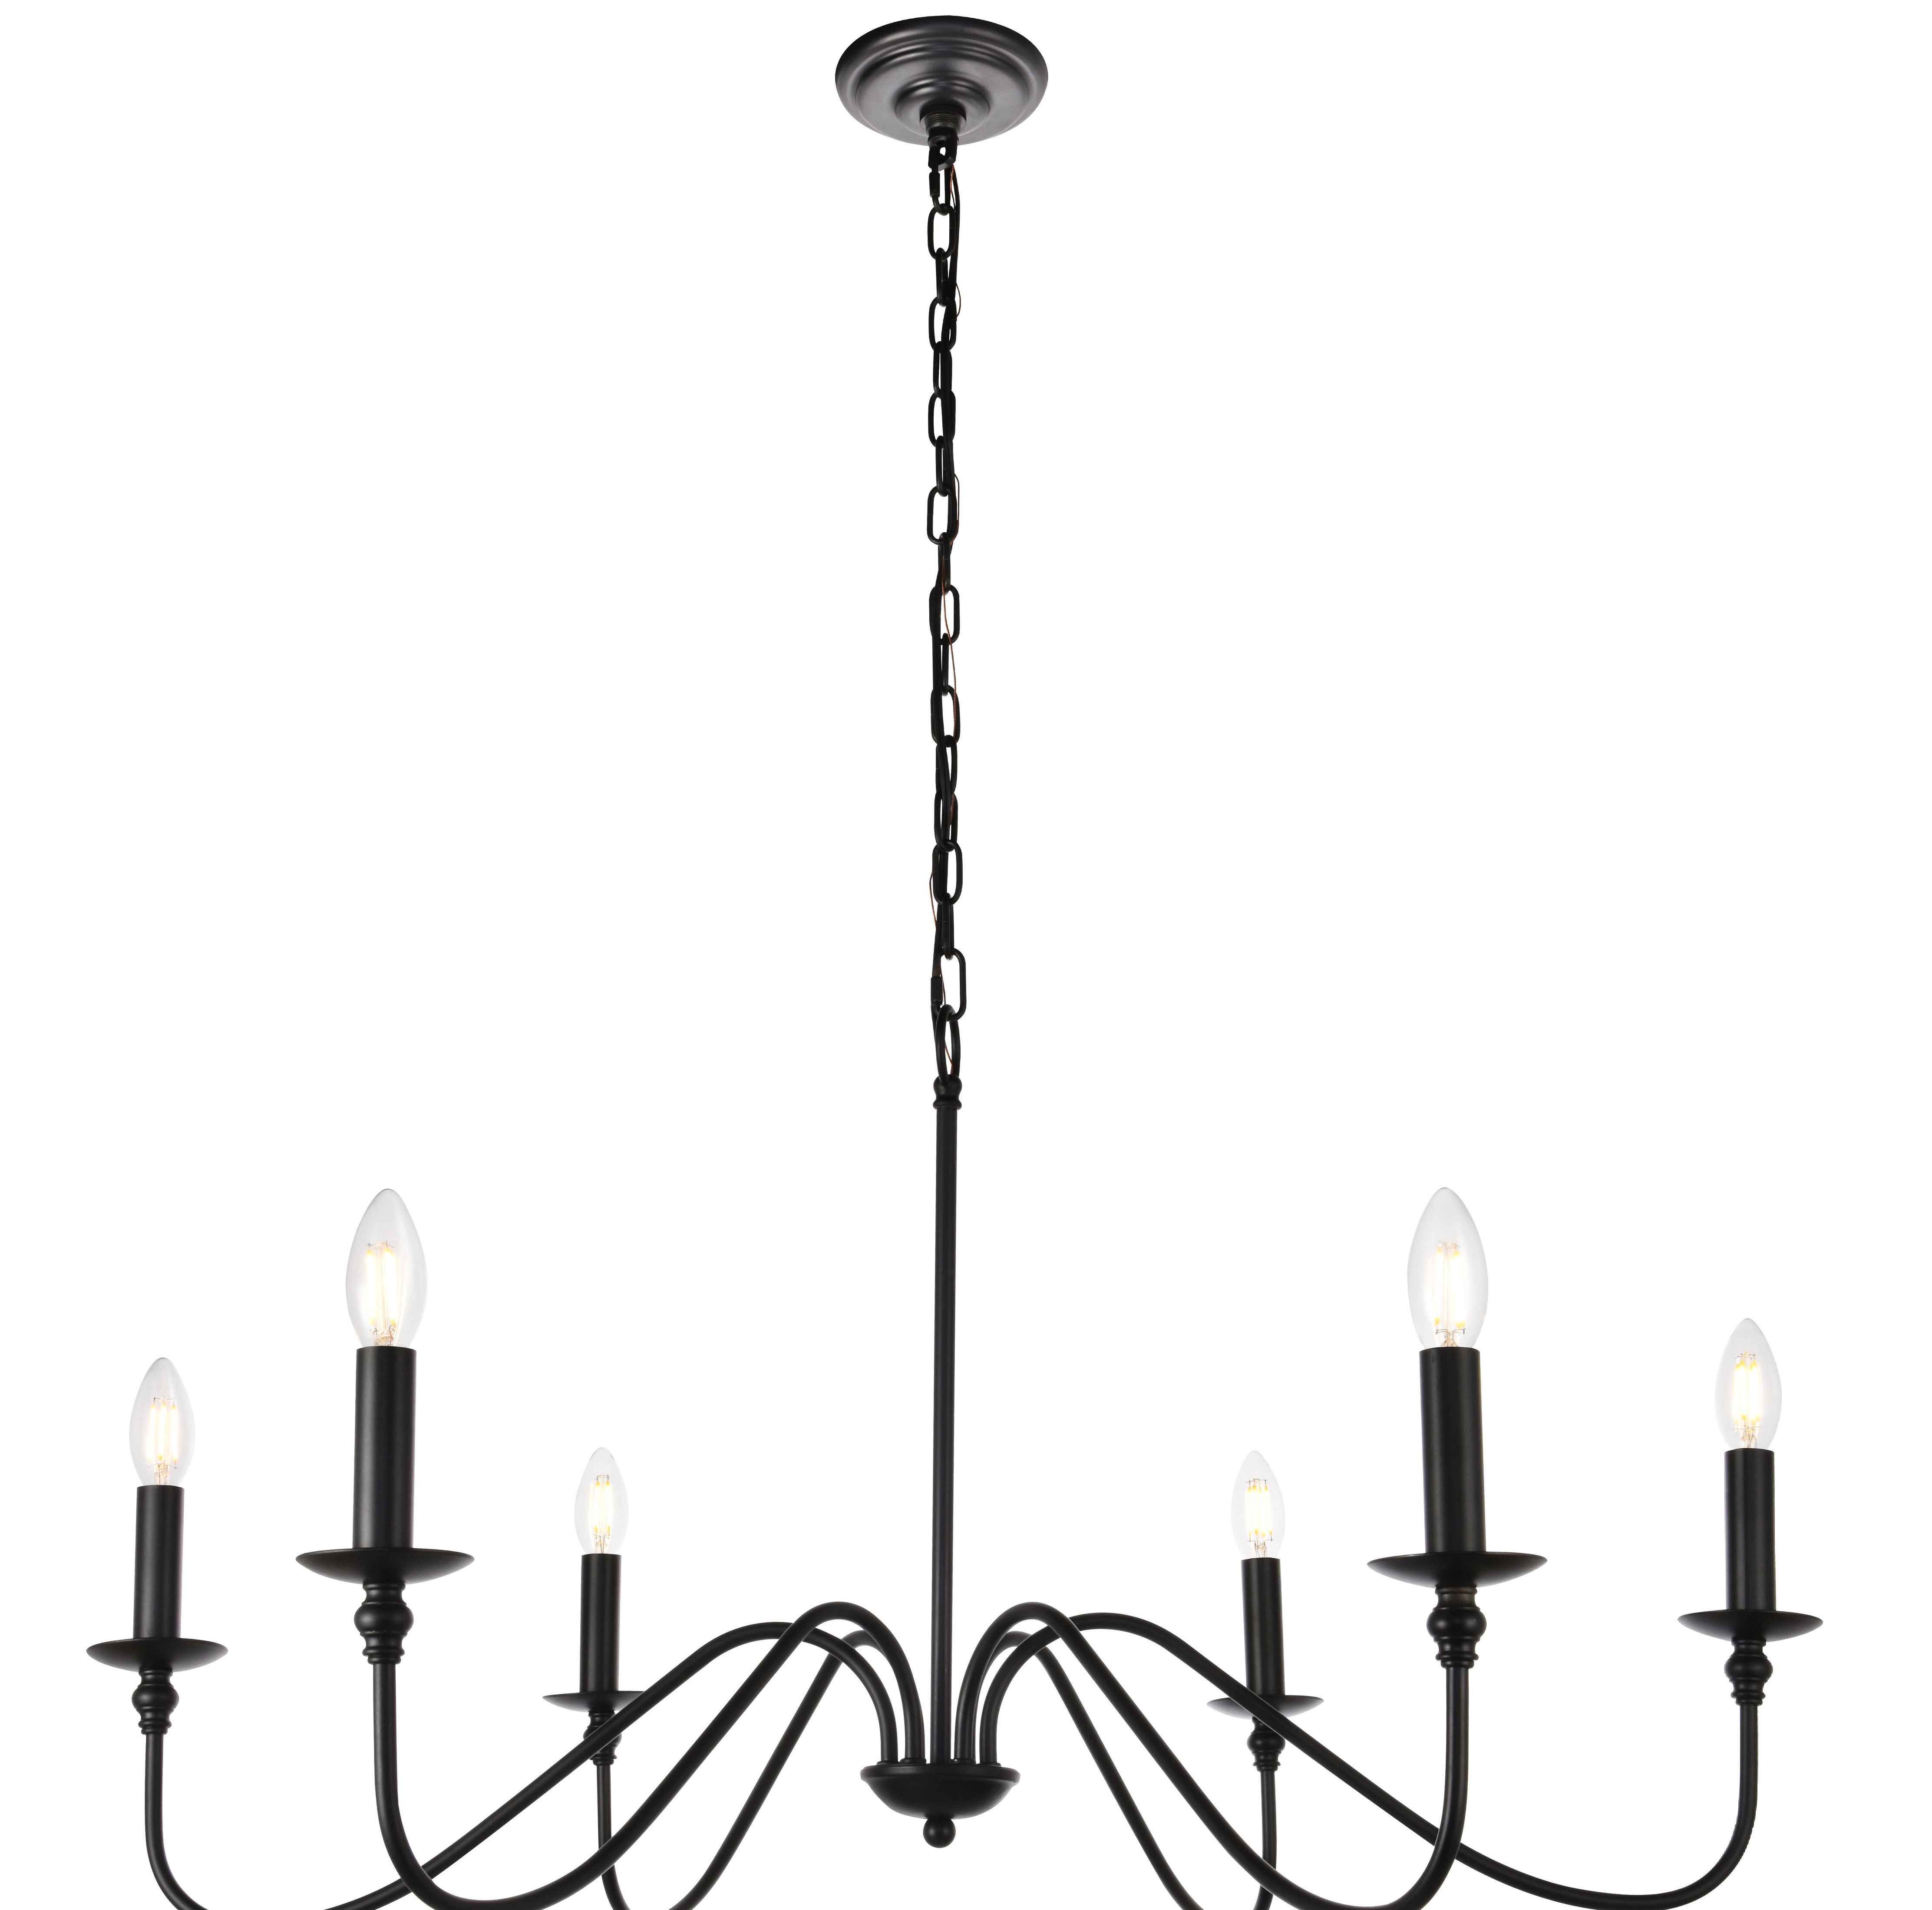 Hamza 6 Light Candle Style Chandelier With Regard To Most Recently Released Shaylee 6 Light Candle Style Chandeliers (Gallery 12 of 20)